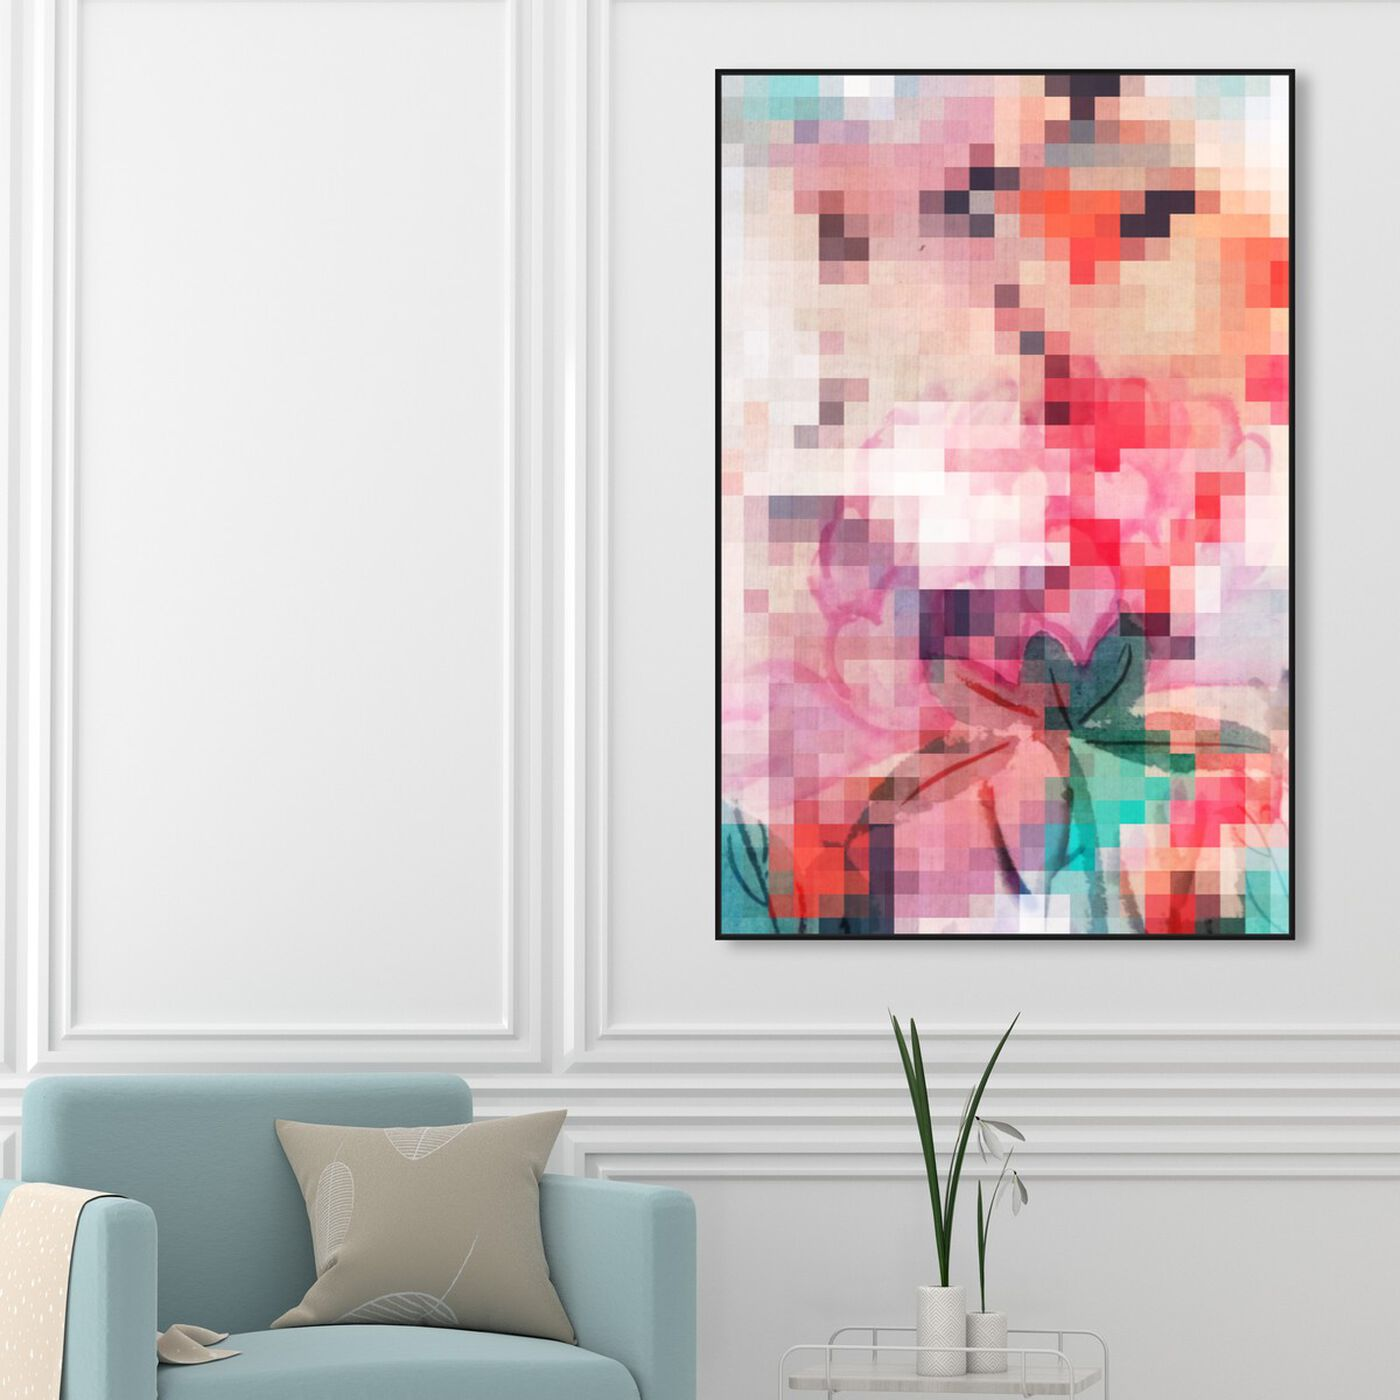 Hanging view of Izumi featuring abstract and paint art.